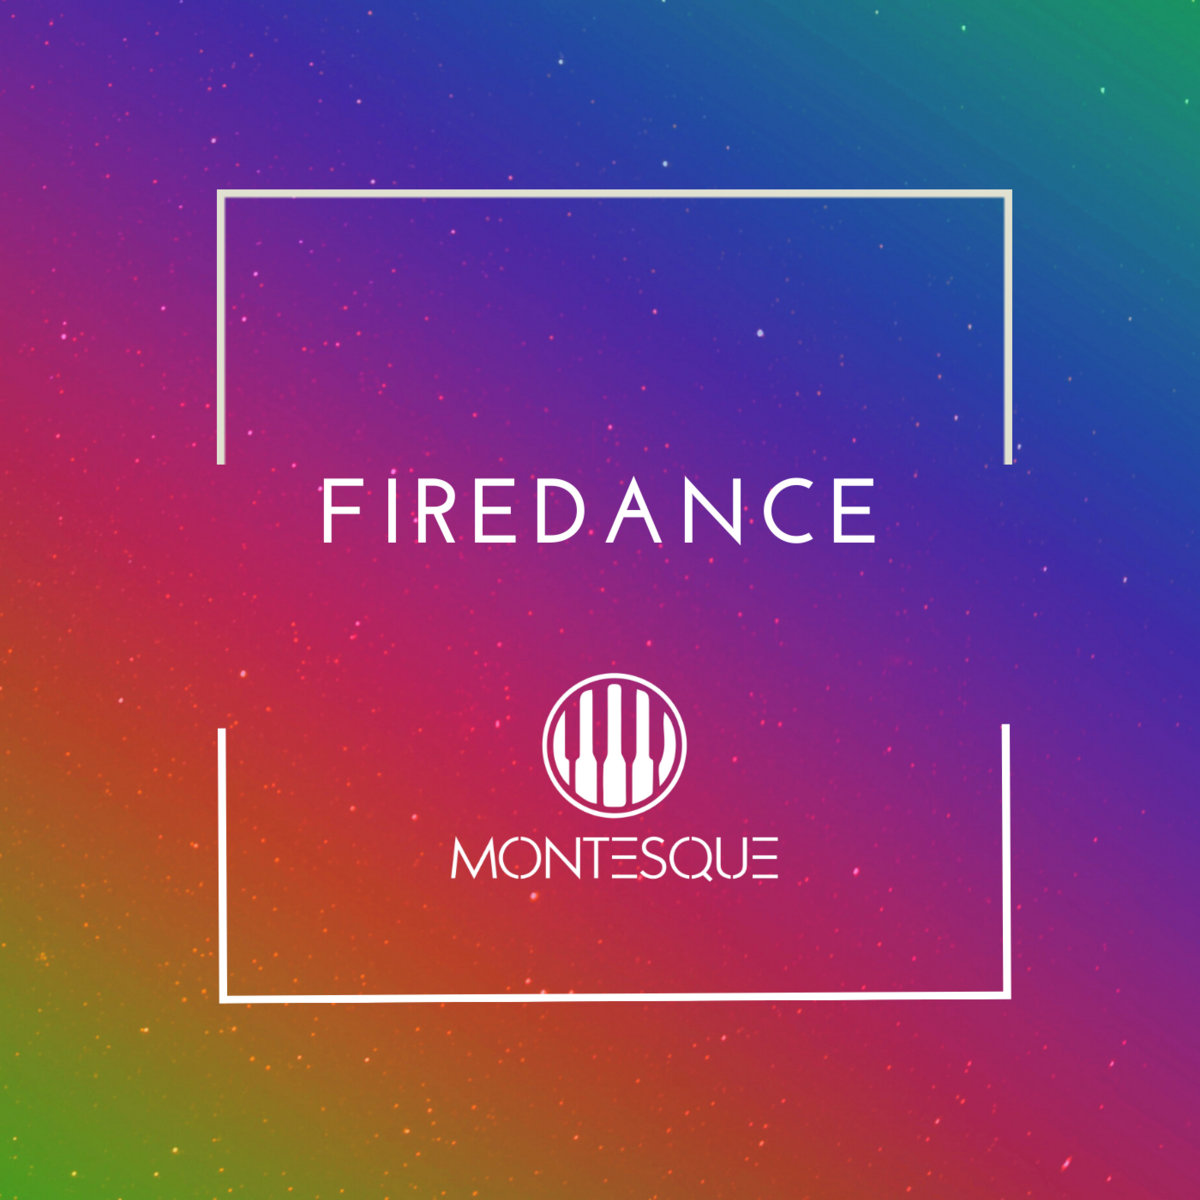 Firedance by Montesque